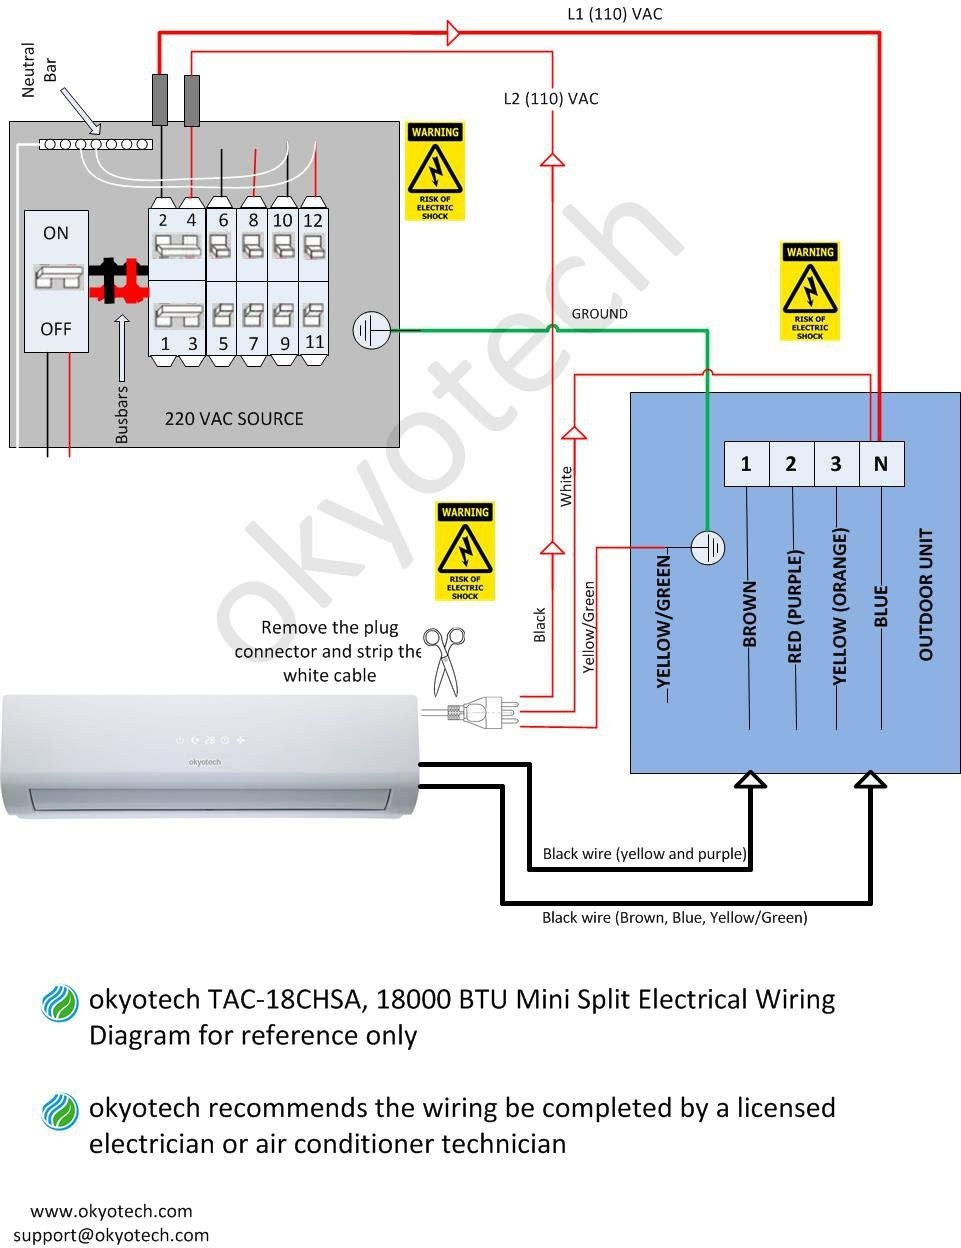 fujitsu mini split heat pump wiring diagram free wiring. Black Bedroom Furniture Sets. Home Design Ideas